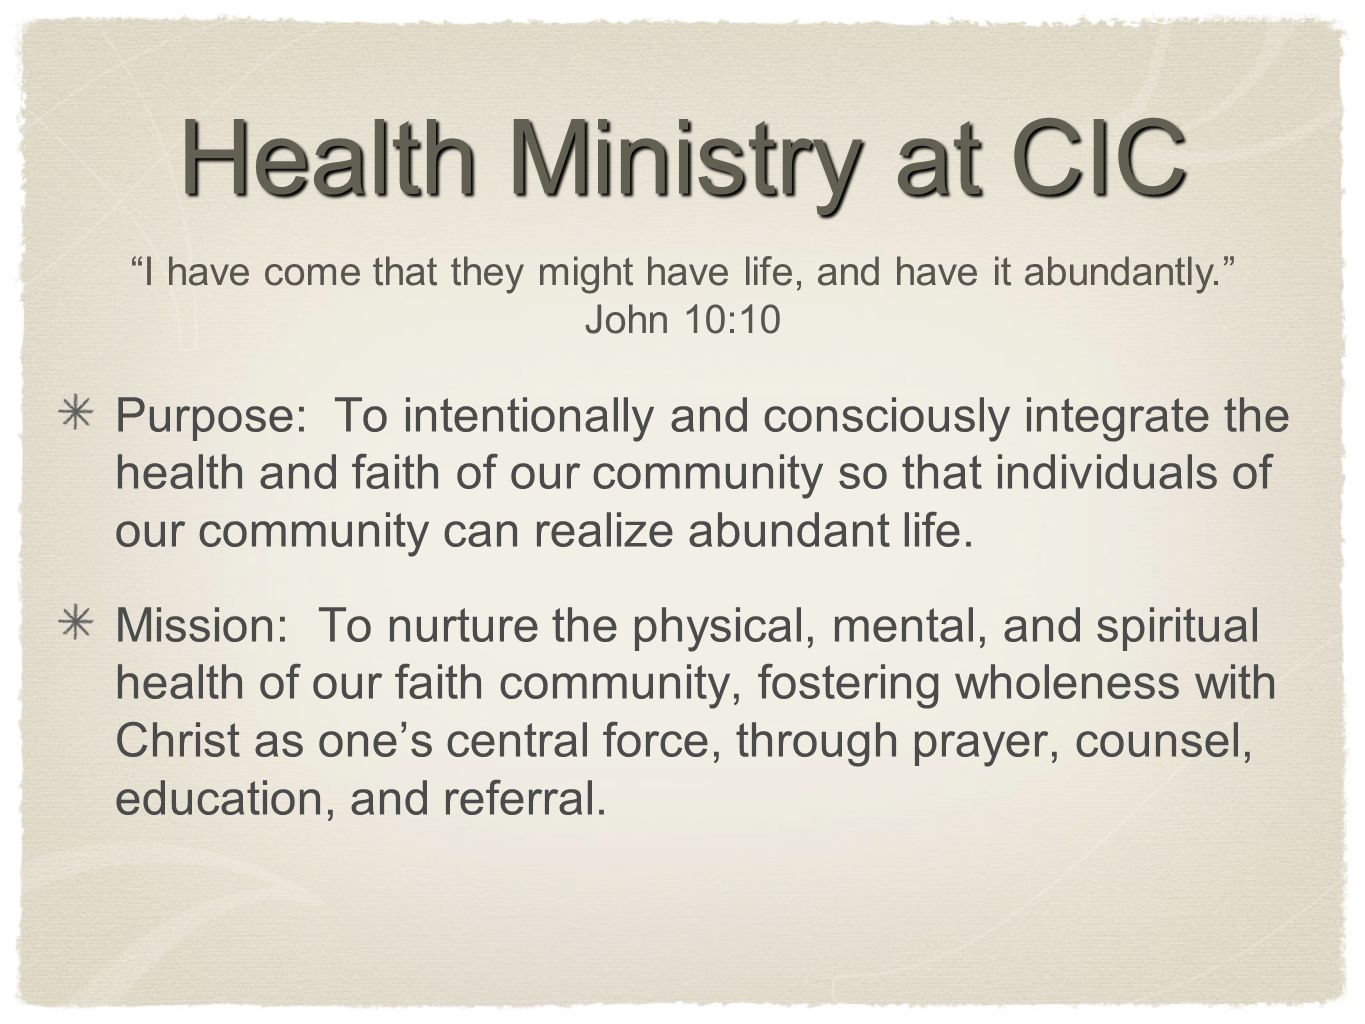 Health Ministry at CIC Purpose: To intentionally and consciously integrate the health and faith of our community so that individuals of our community can realize abundant life.